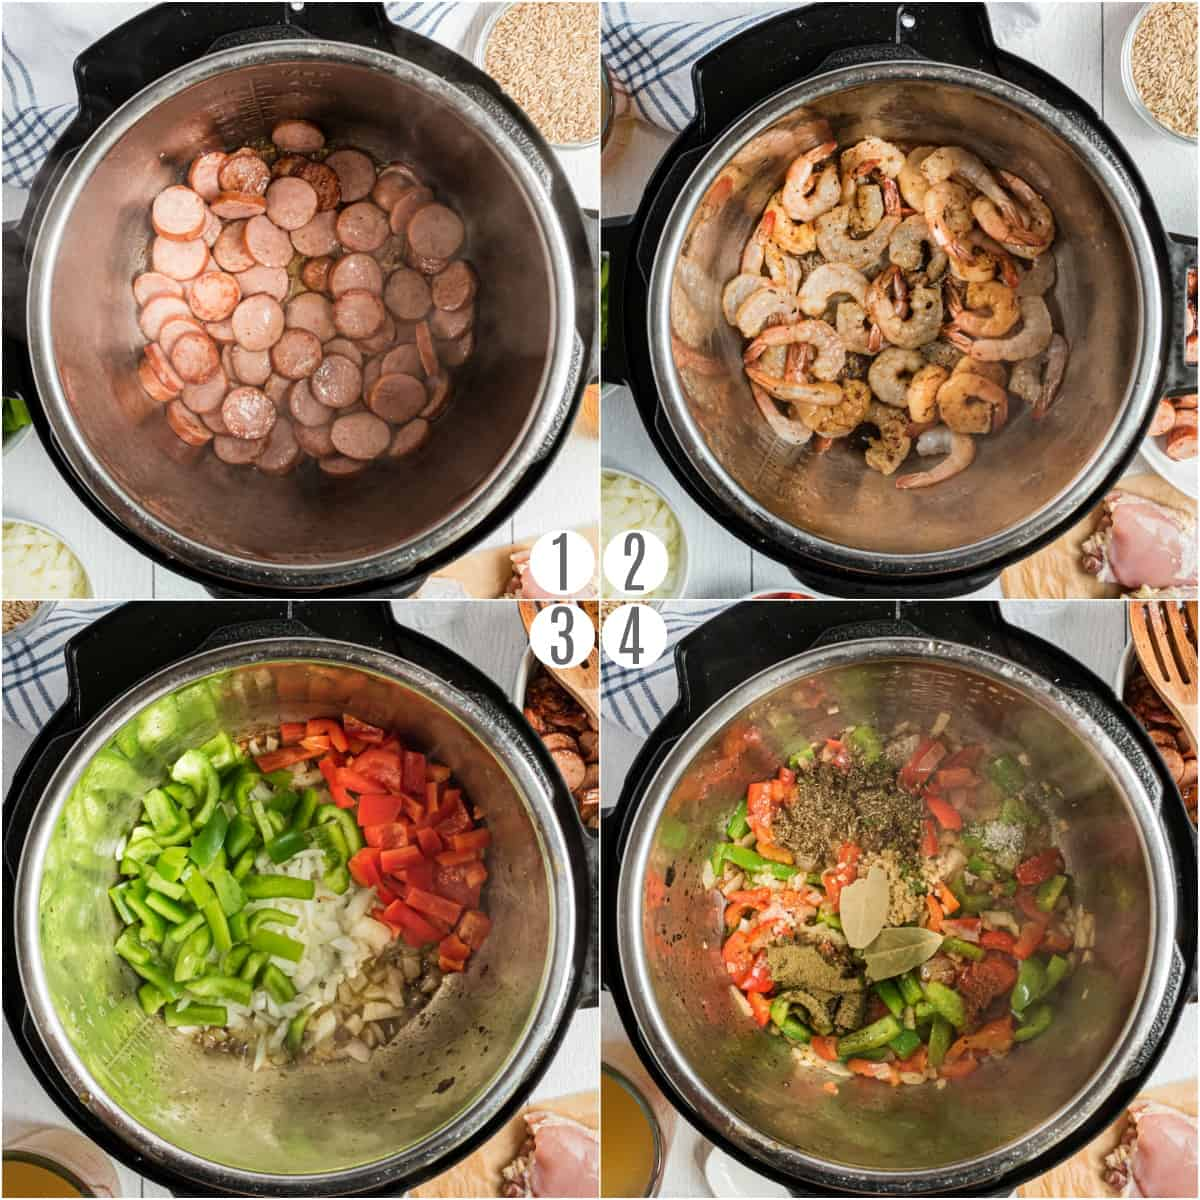 Step by step photos showing how to make jambalaya in the pressure cooker.